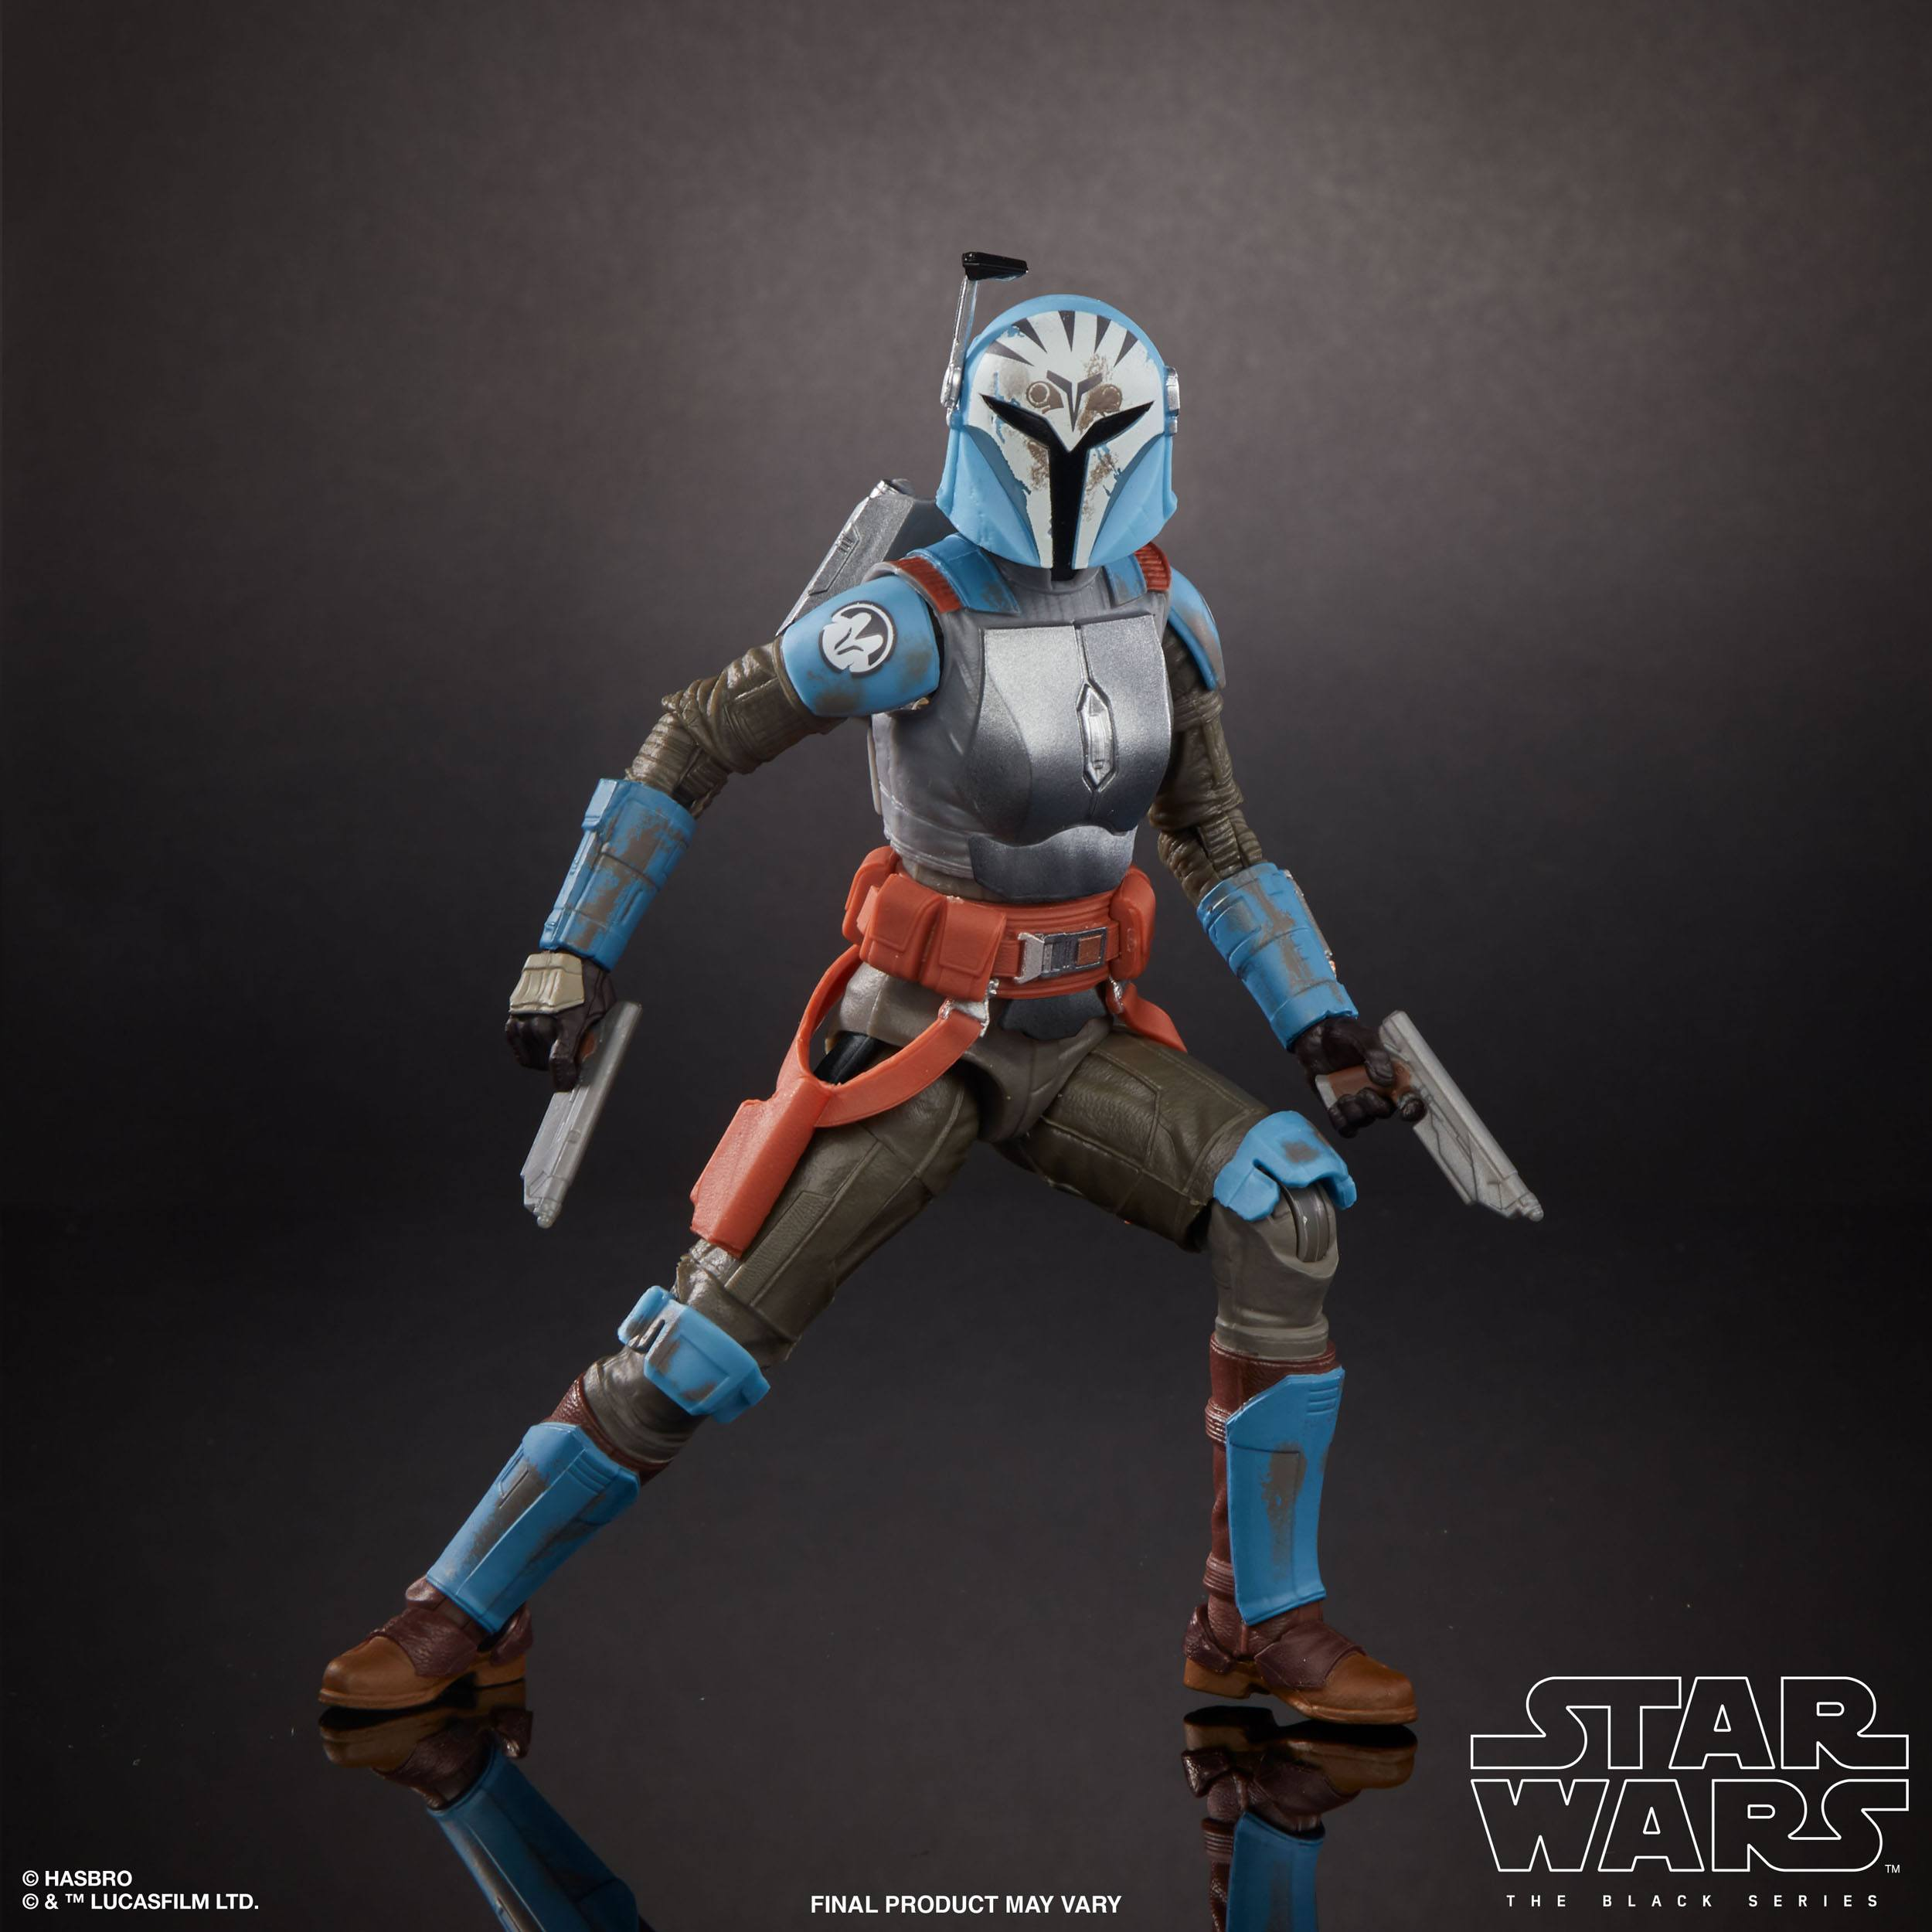 Star Wars The Black Series Bo-Katan Kryze (The Mandalorian) 15cm Actionfigur  F1863 5010993813377